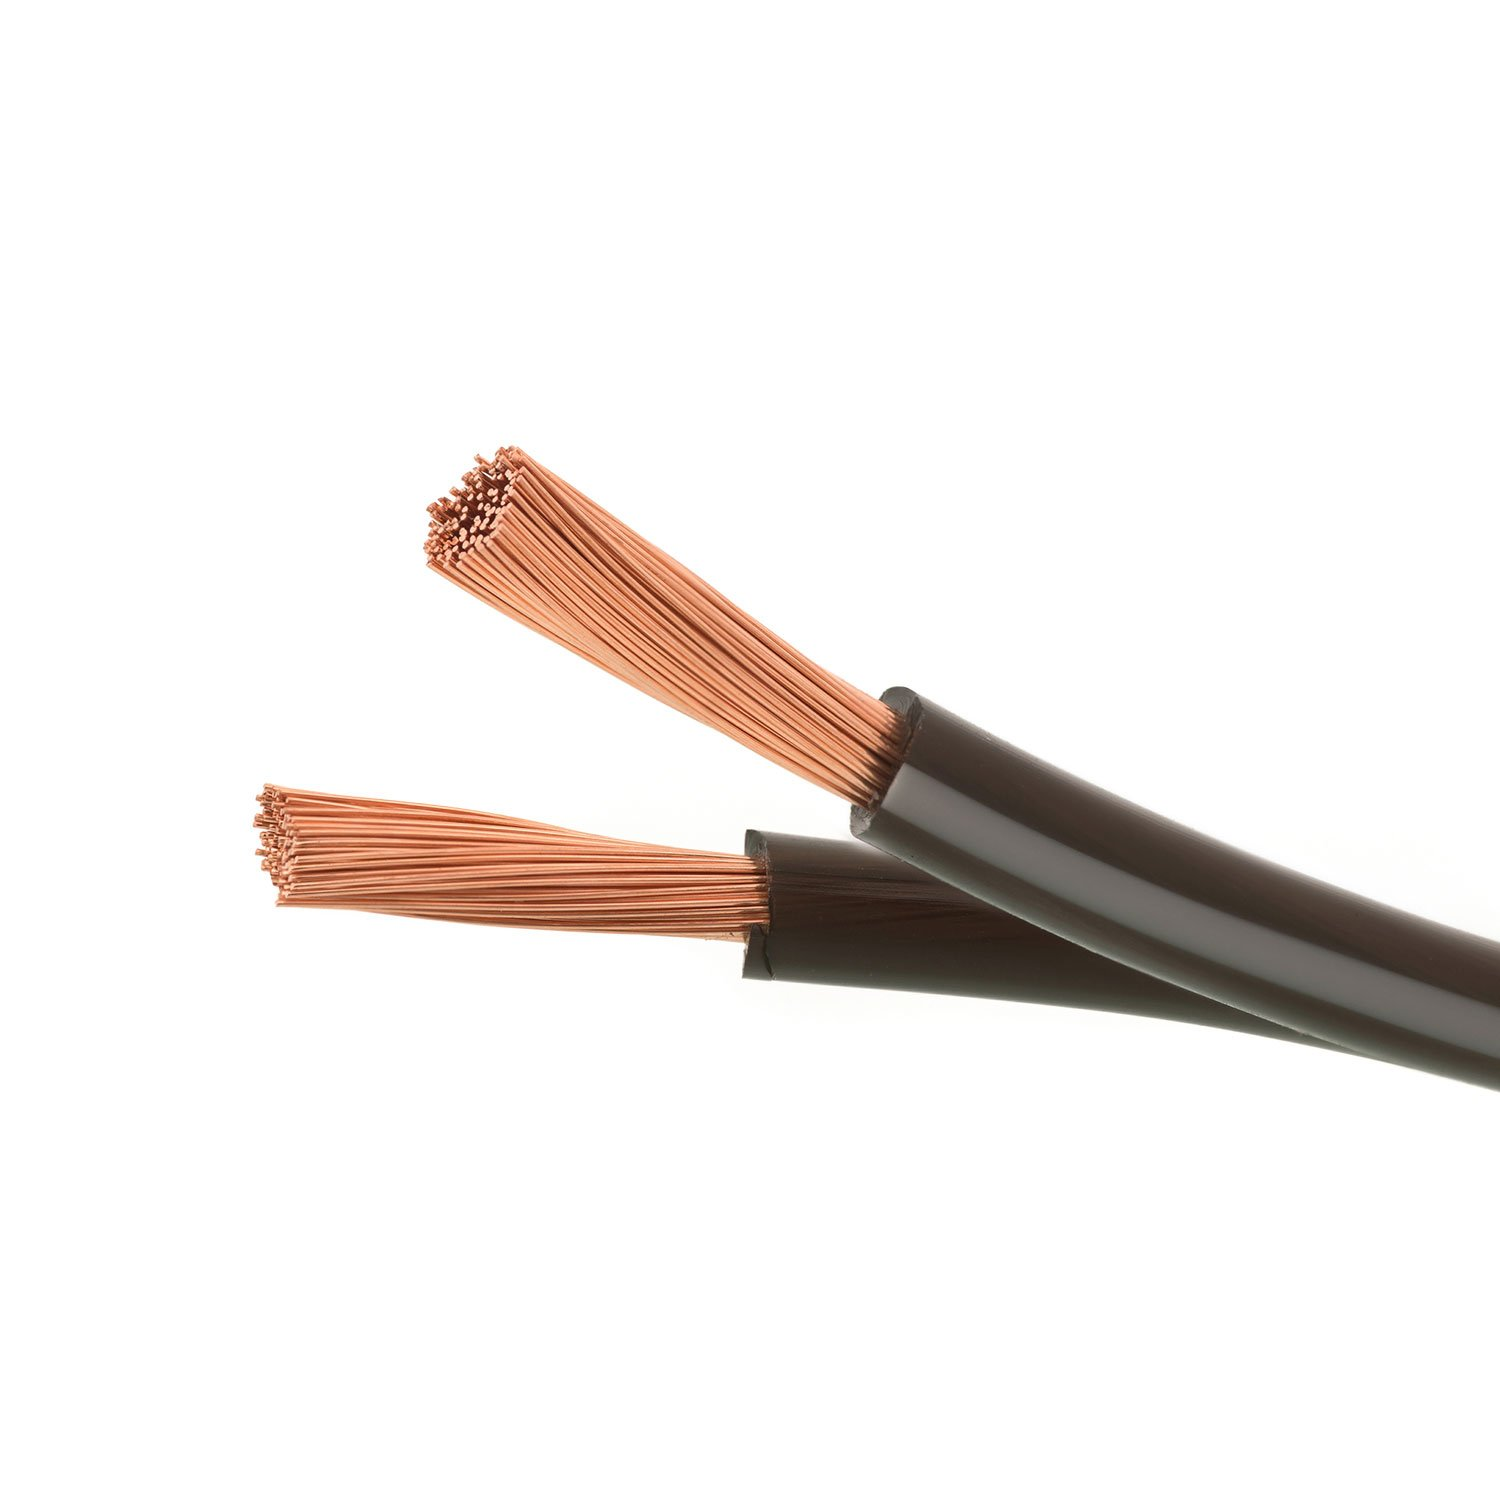 Amazon.com: DCSk Awg 13 - 2X2,5Mm² 10M Role | Hifi Copper Loud ...